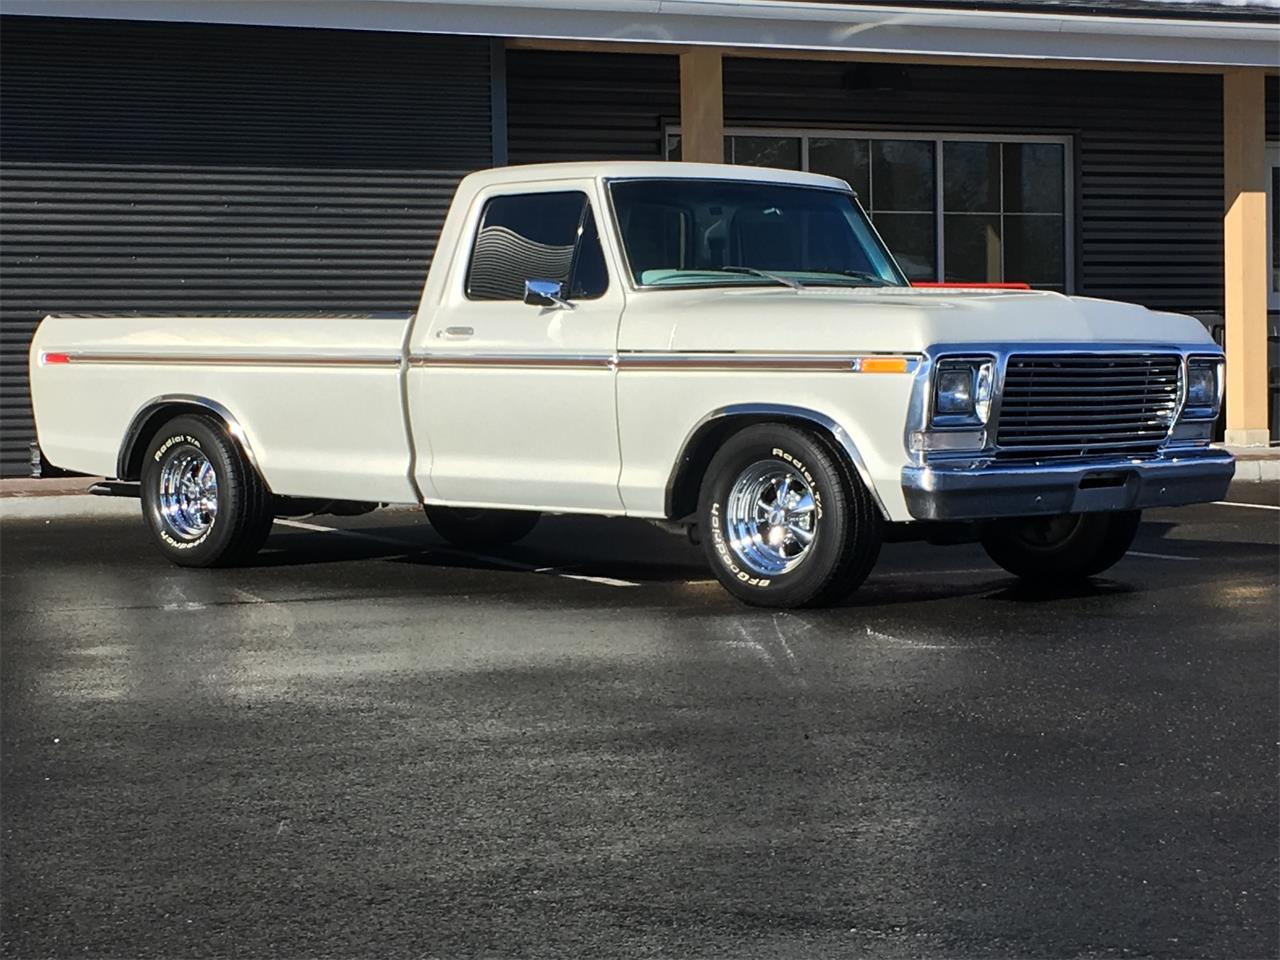 Large picture of 79 f150 kpxm